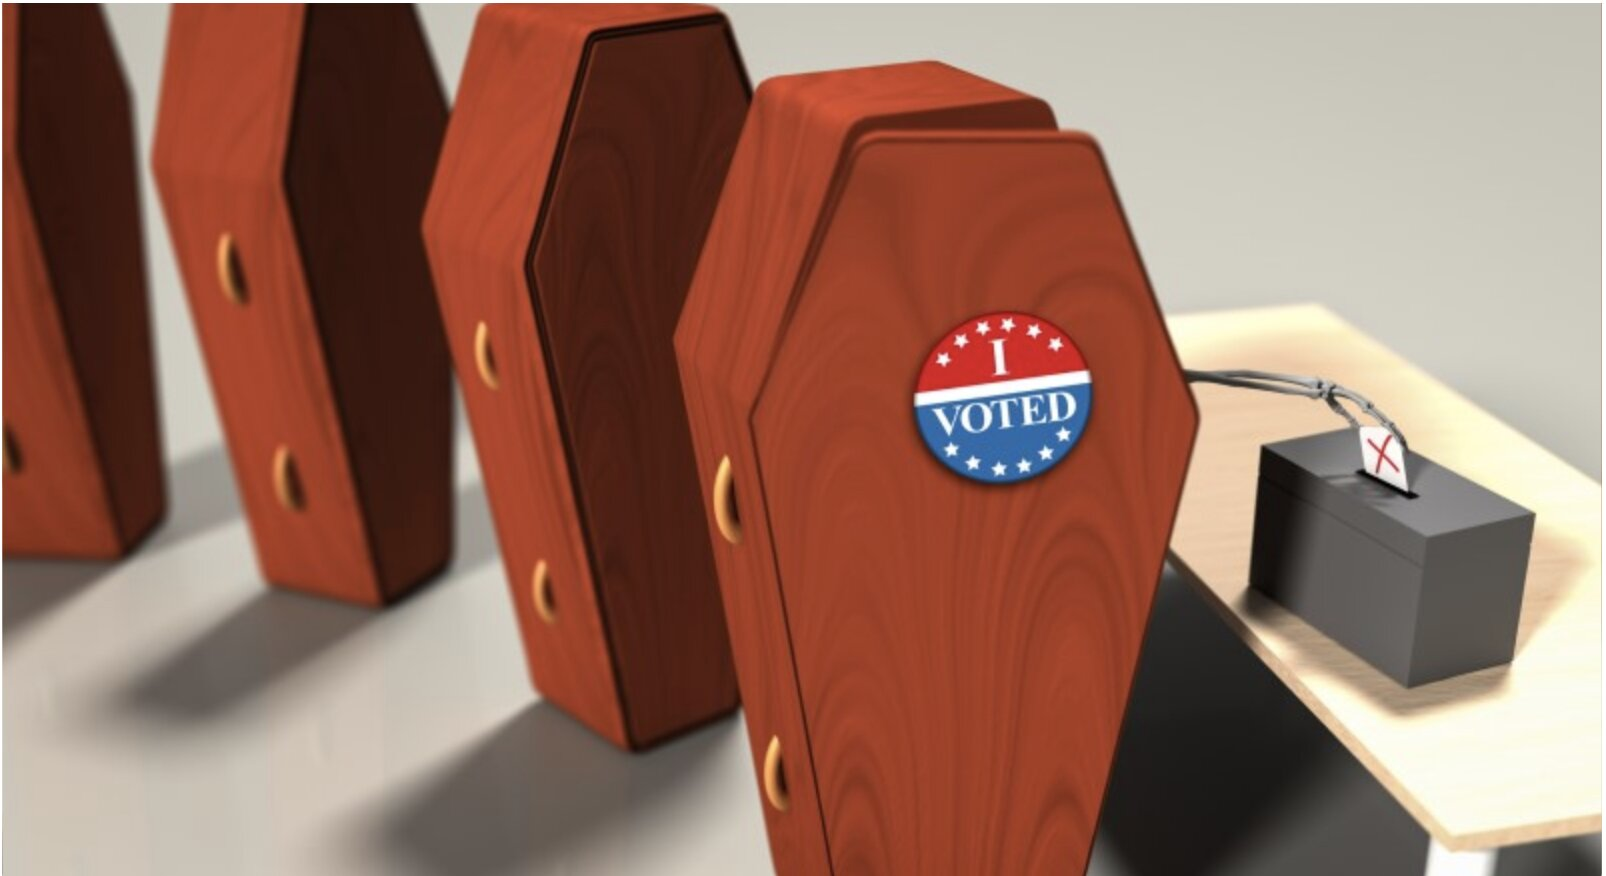 Watch Live: Democrats Engaged In Open Election/Voter Fraud In Multiple States